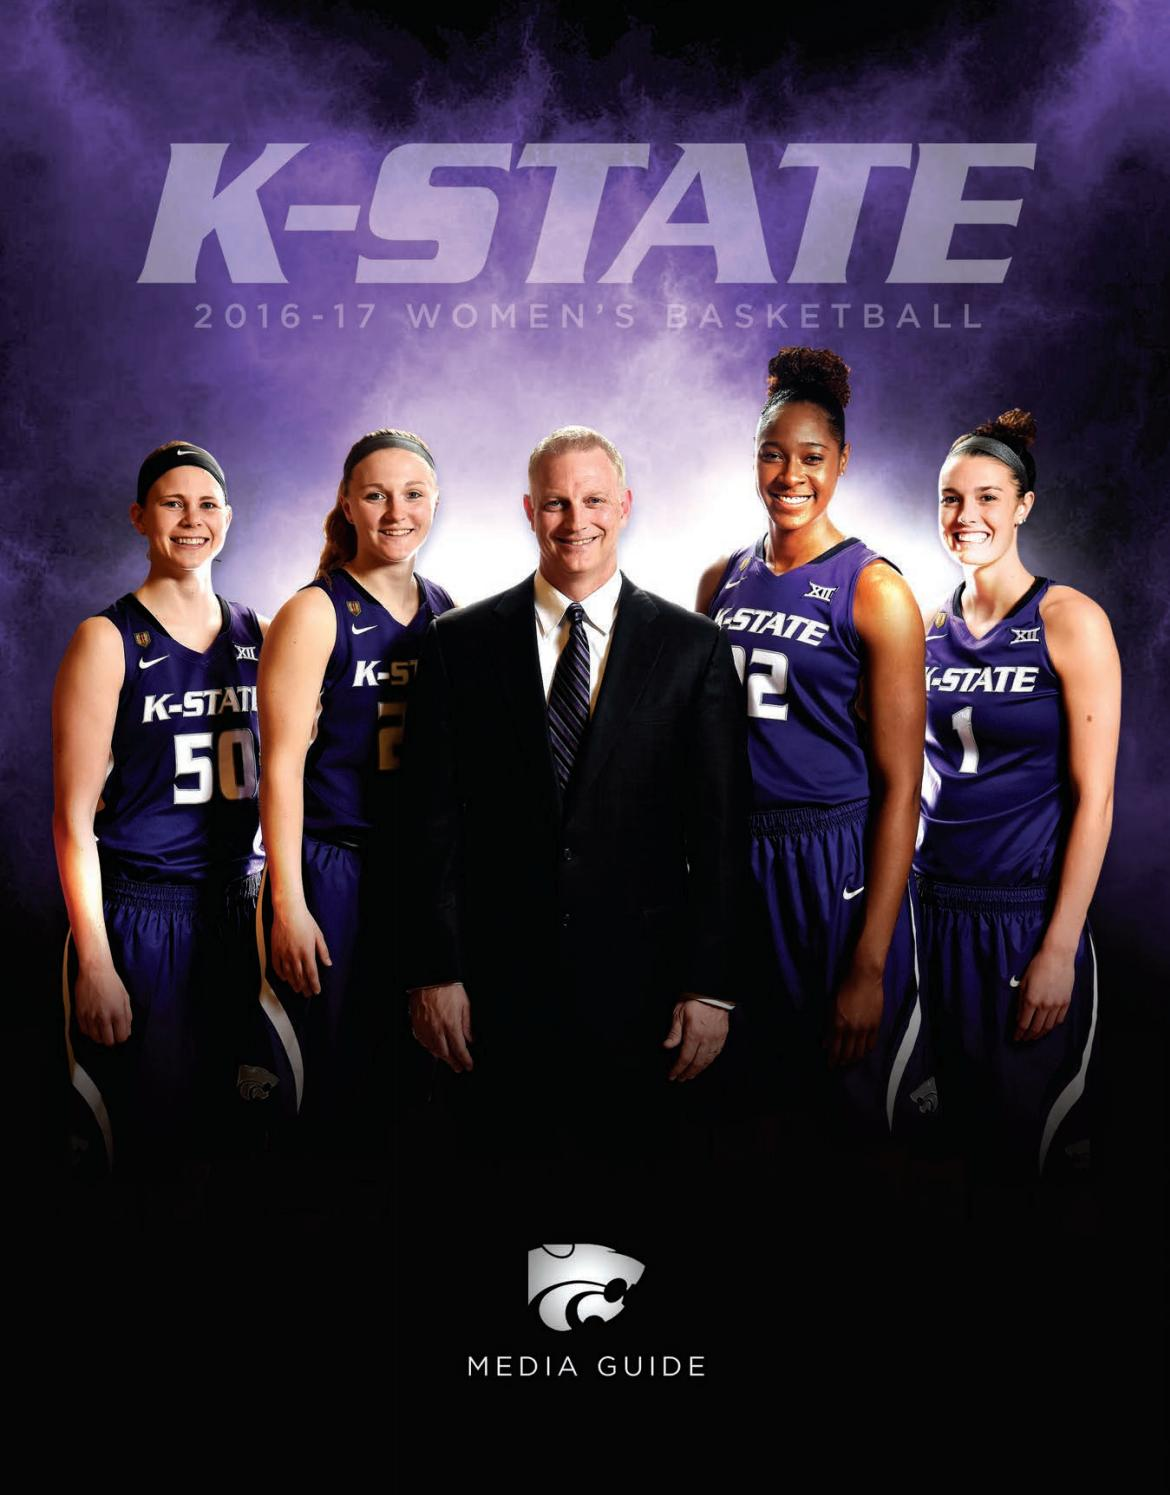 3751057d0a2 2016 17 K-State WBB Media Guide by K-State Athletics - issuu